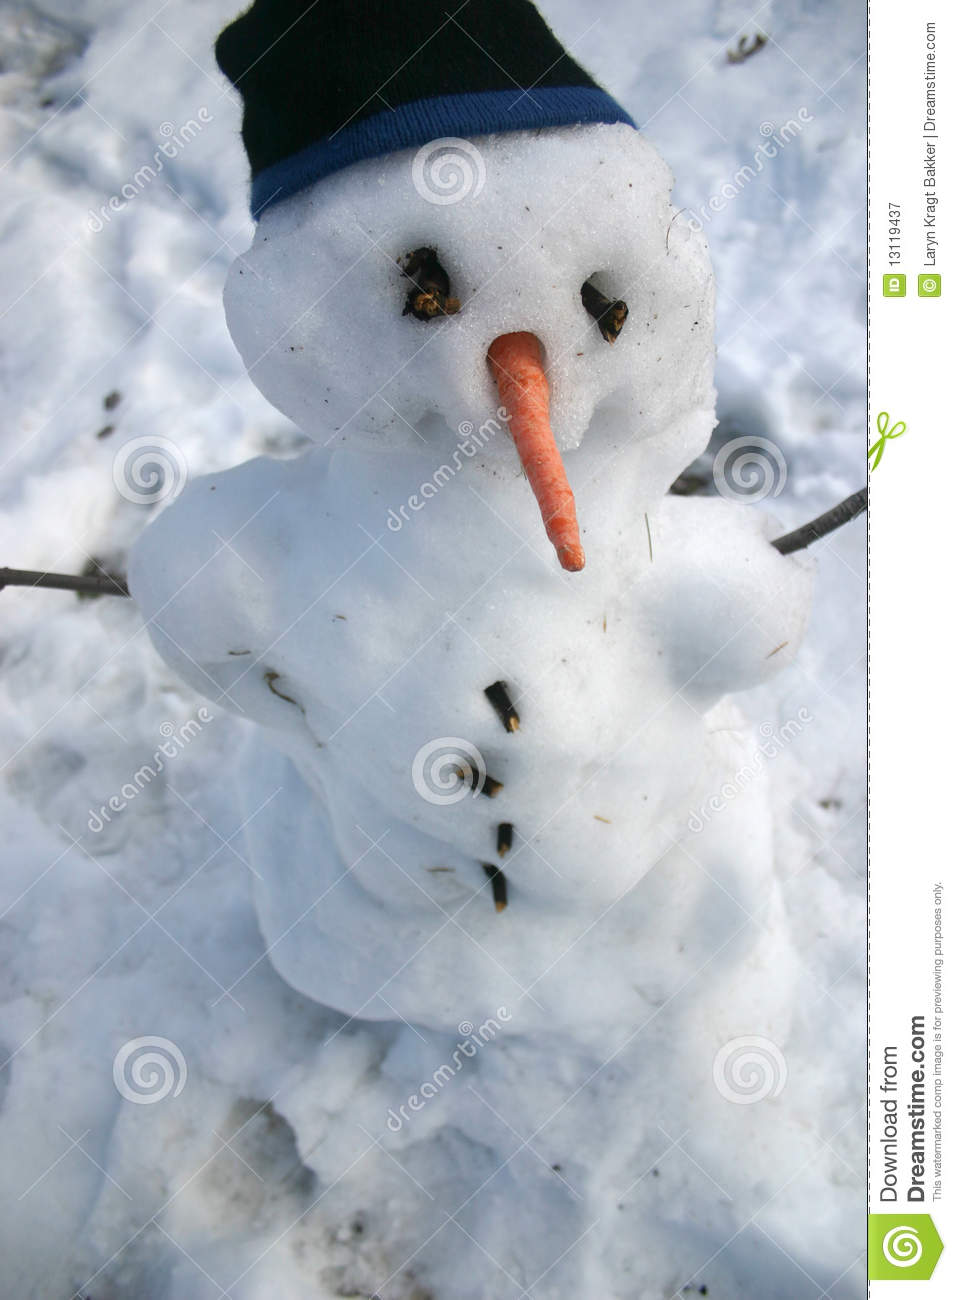 snowman with carrot nose and toque royalty free stock